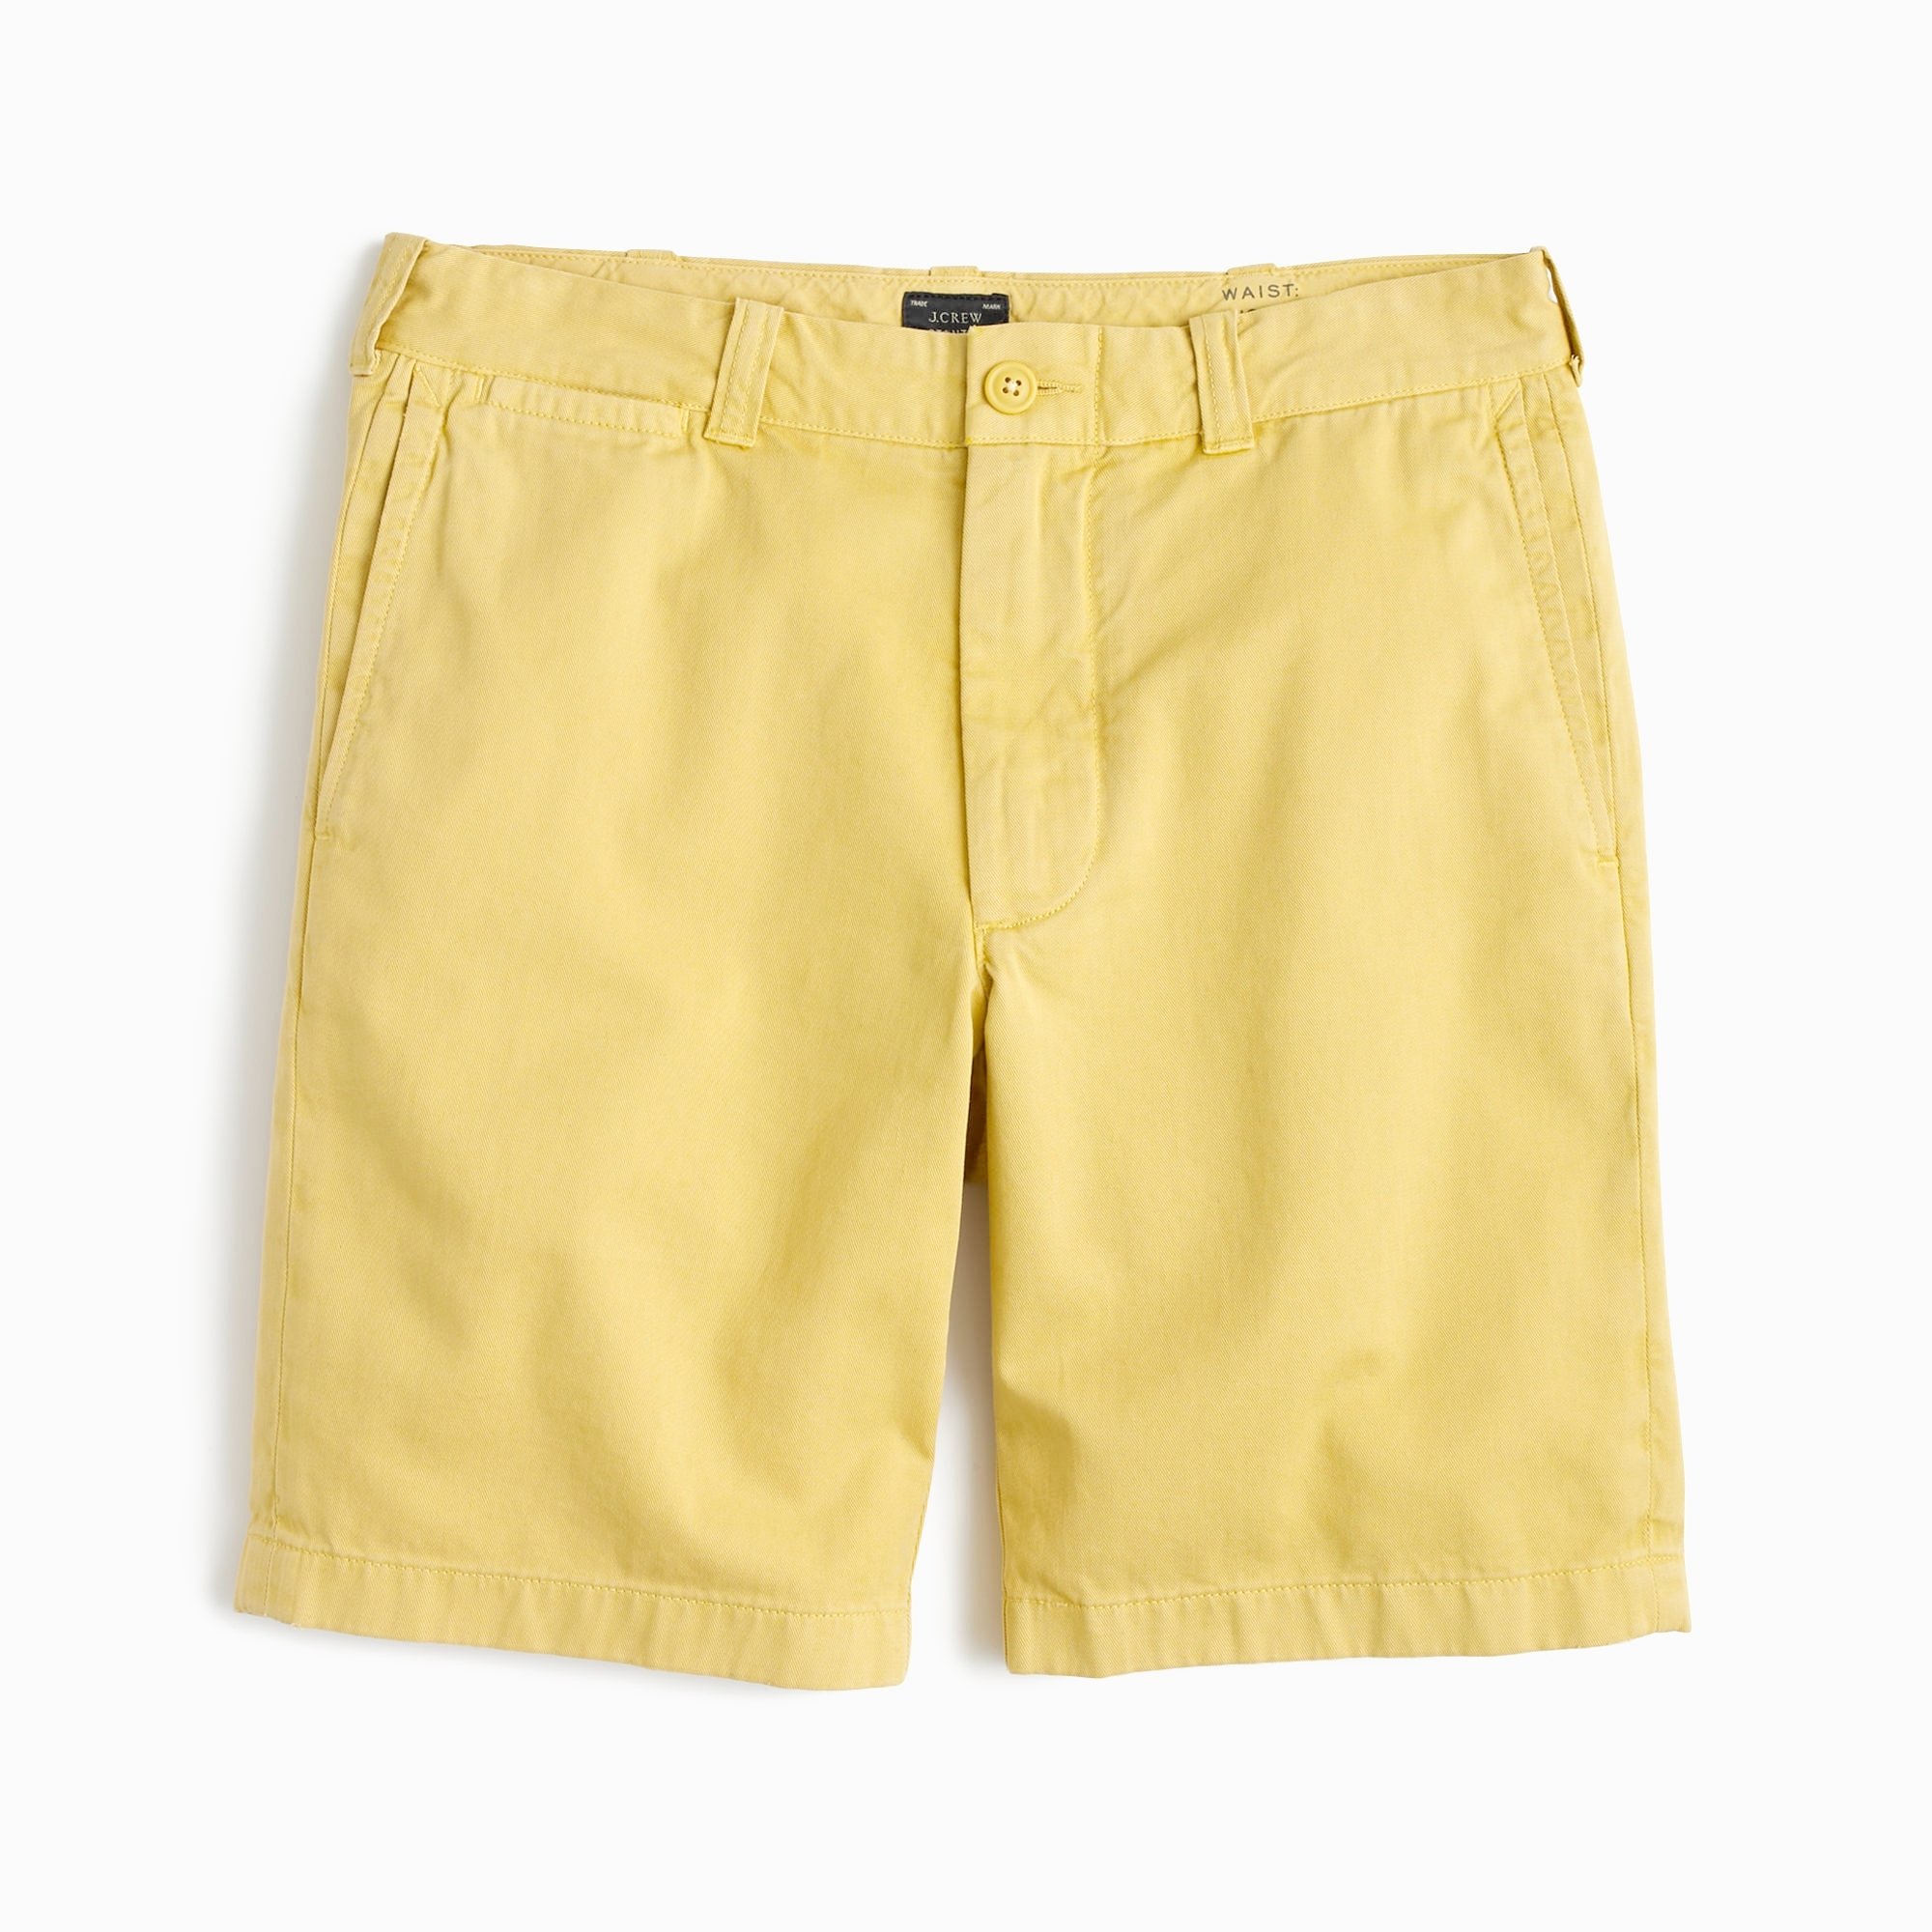 Look your best in these cheeful shorts while grilling up those burgers and dogs at your next BBQ.  - J. Crew 9